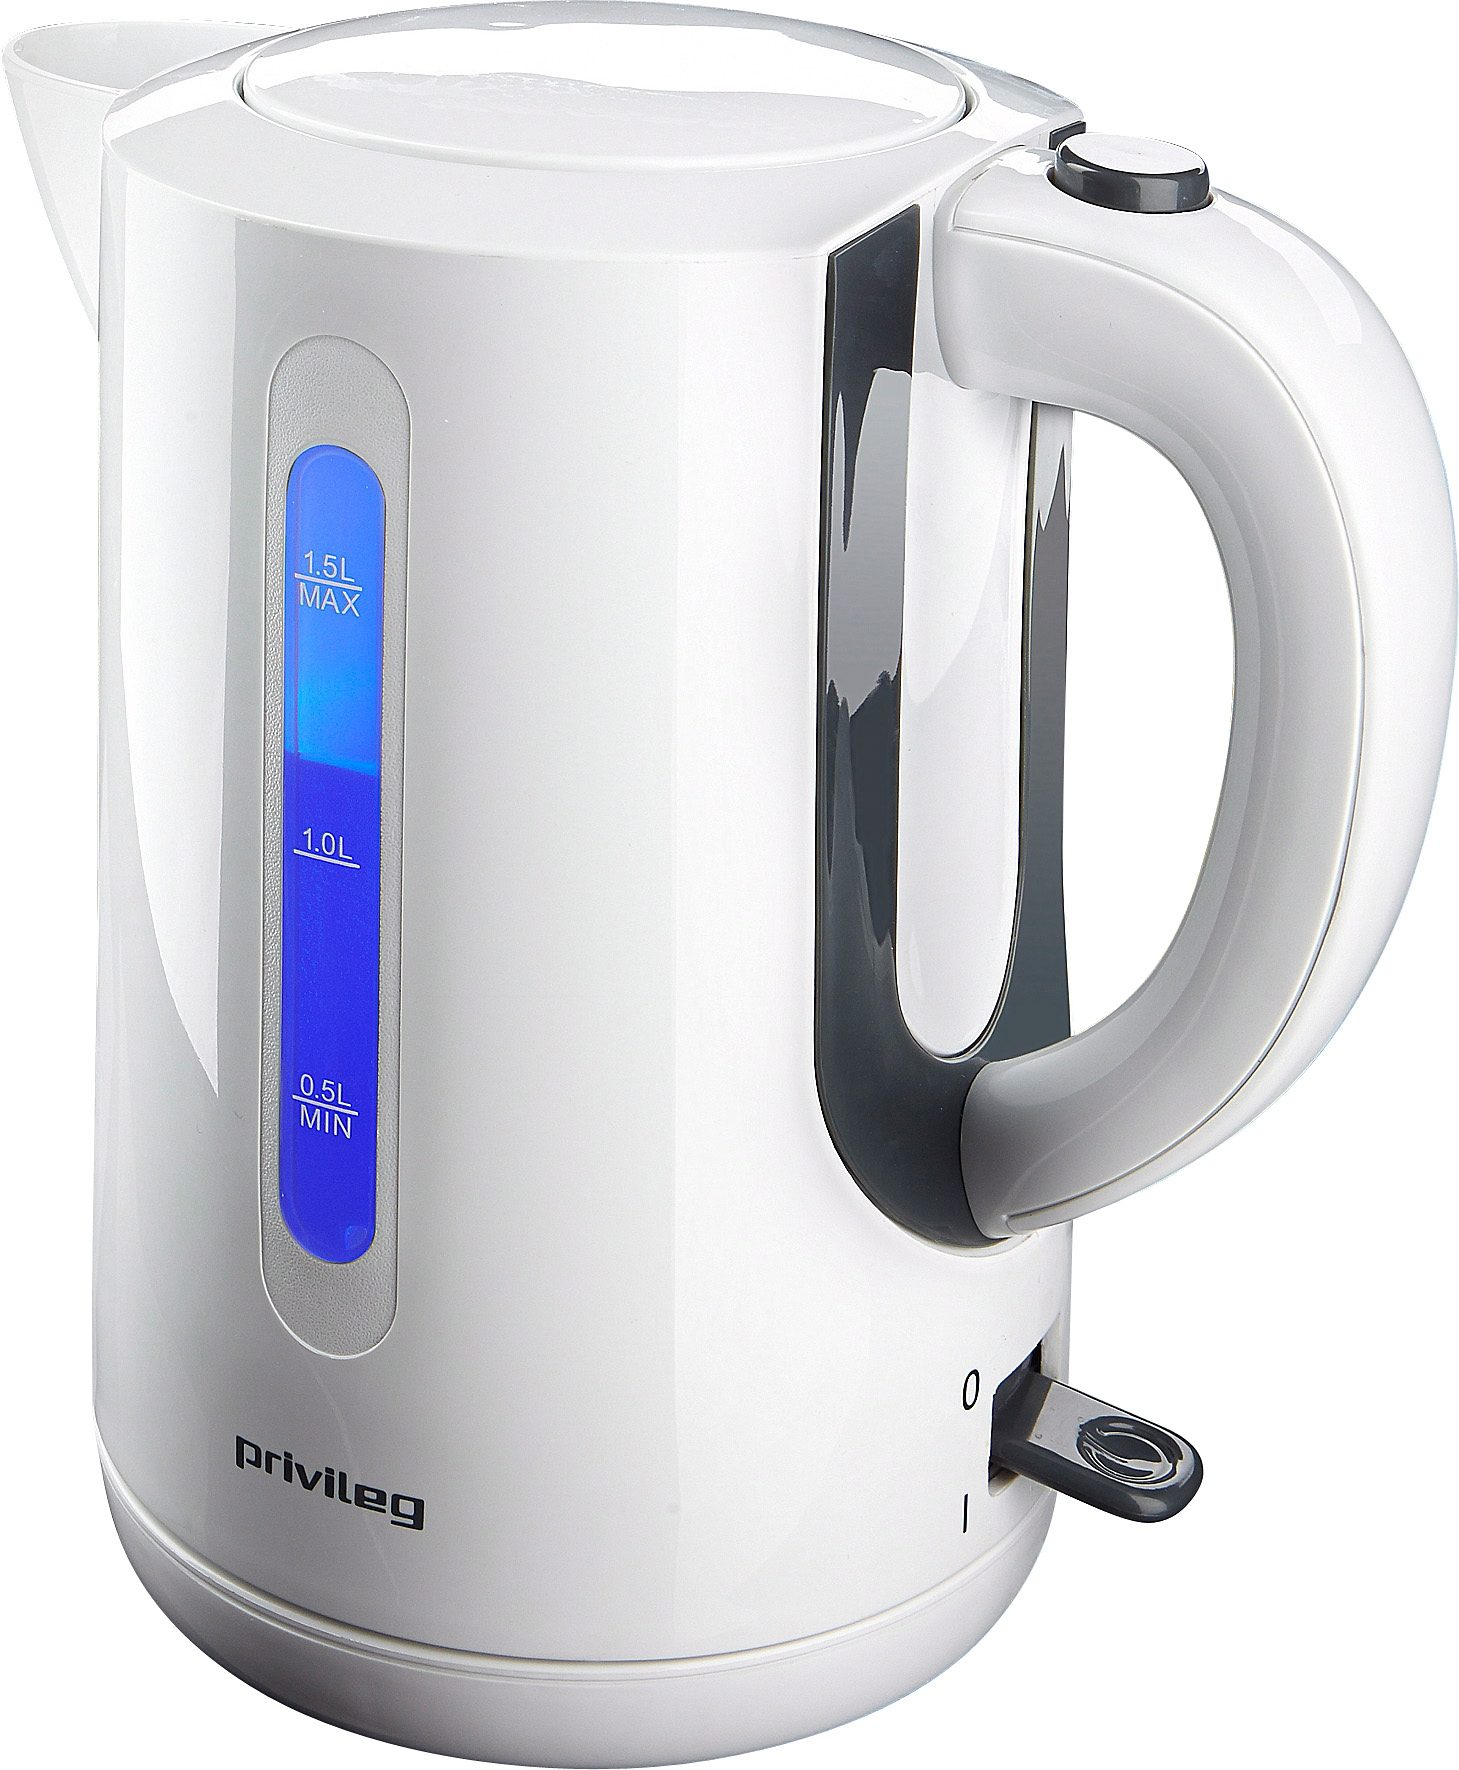 privileg Wasserkocher, 1,5 Liter, 2200 Watt